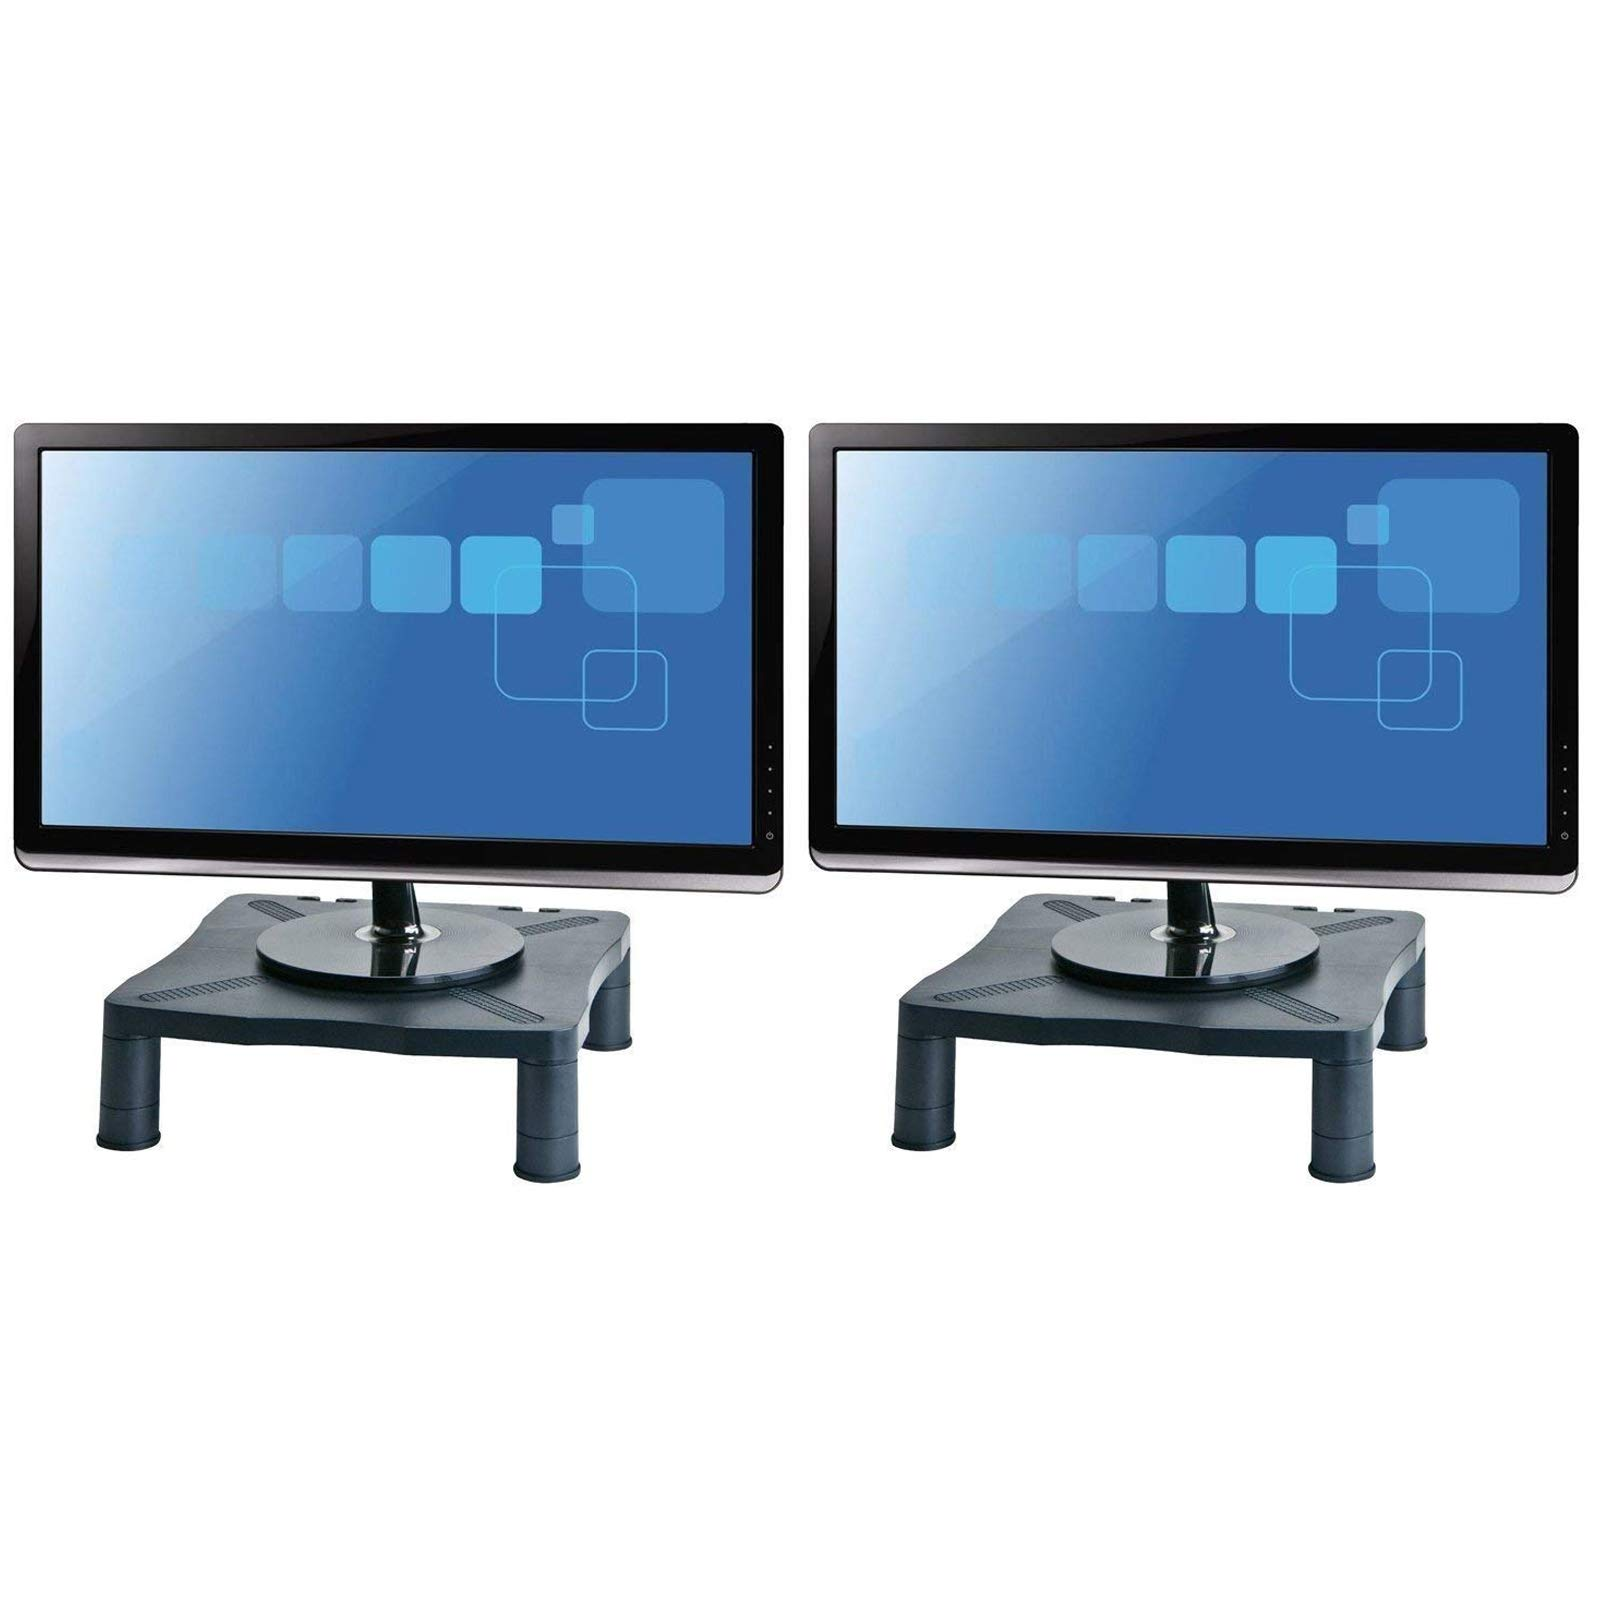 Halter Height Adjustable Monitor Stand - Printer Stand - Desk Shelf - Monitor Riser For Screens Up To 24'' (24 Inches) - 2 Pack